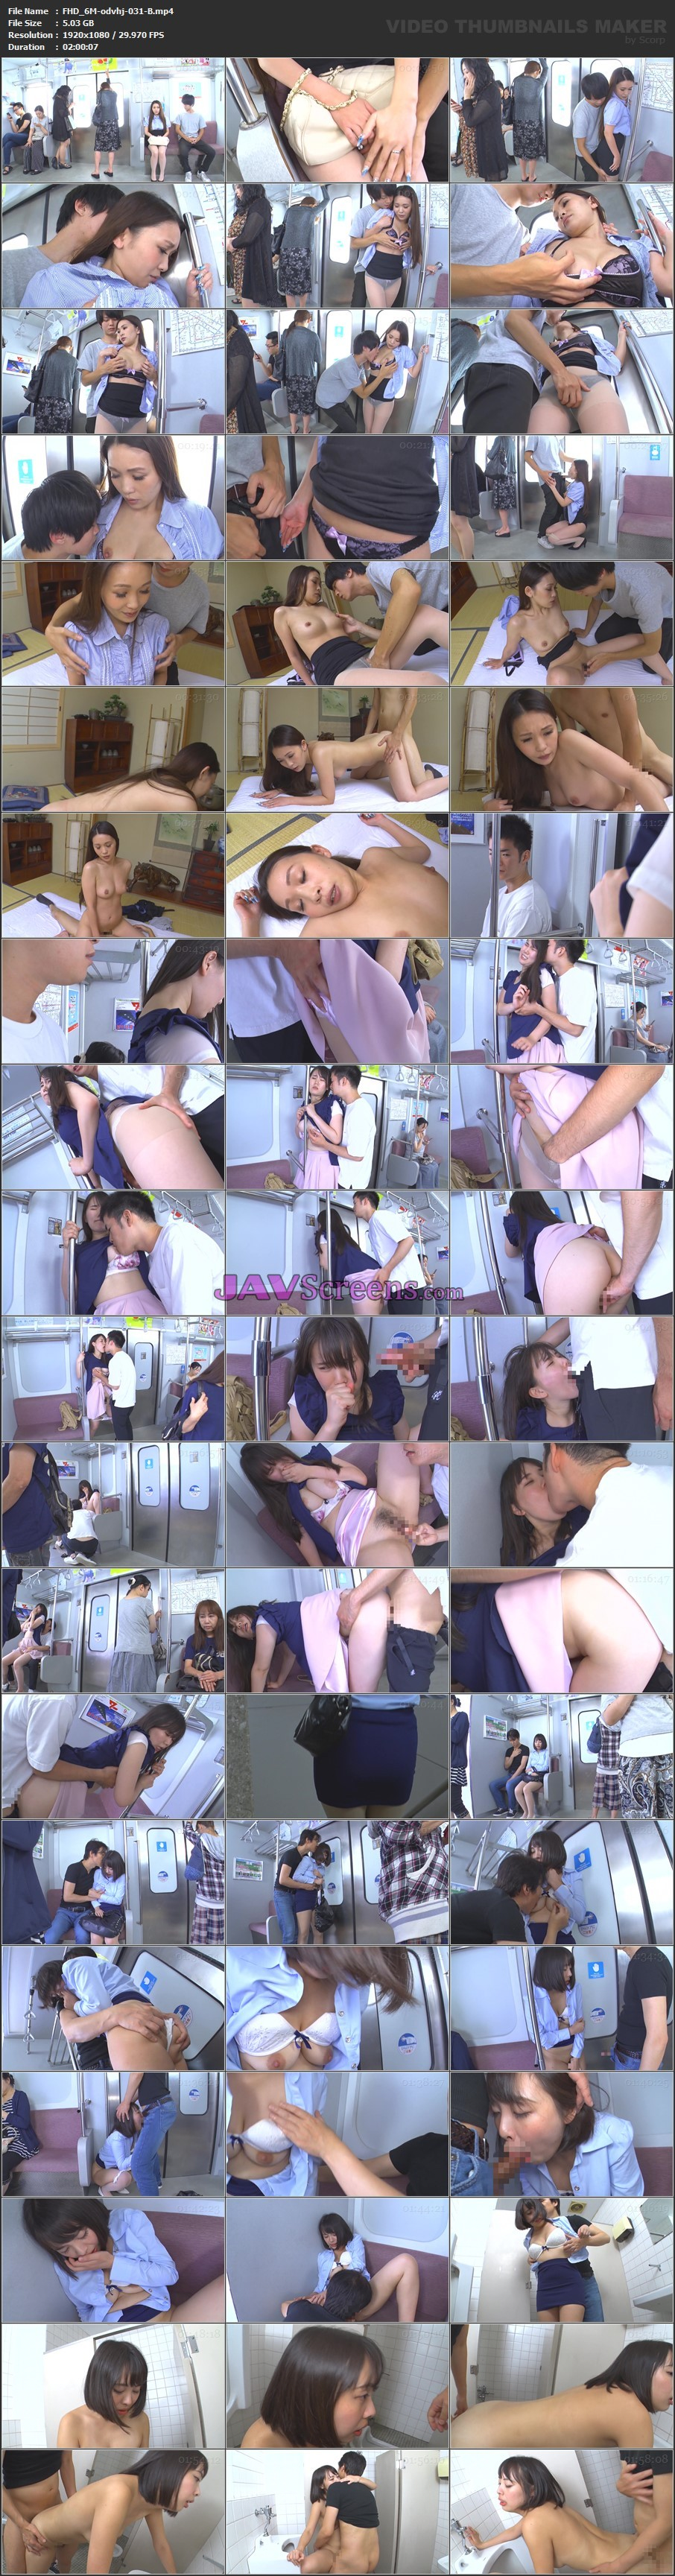 ODVHJ-031B.jpg - JAV Screenshot